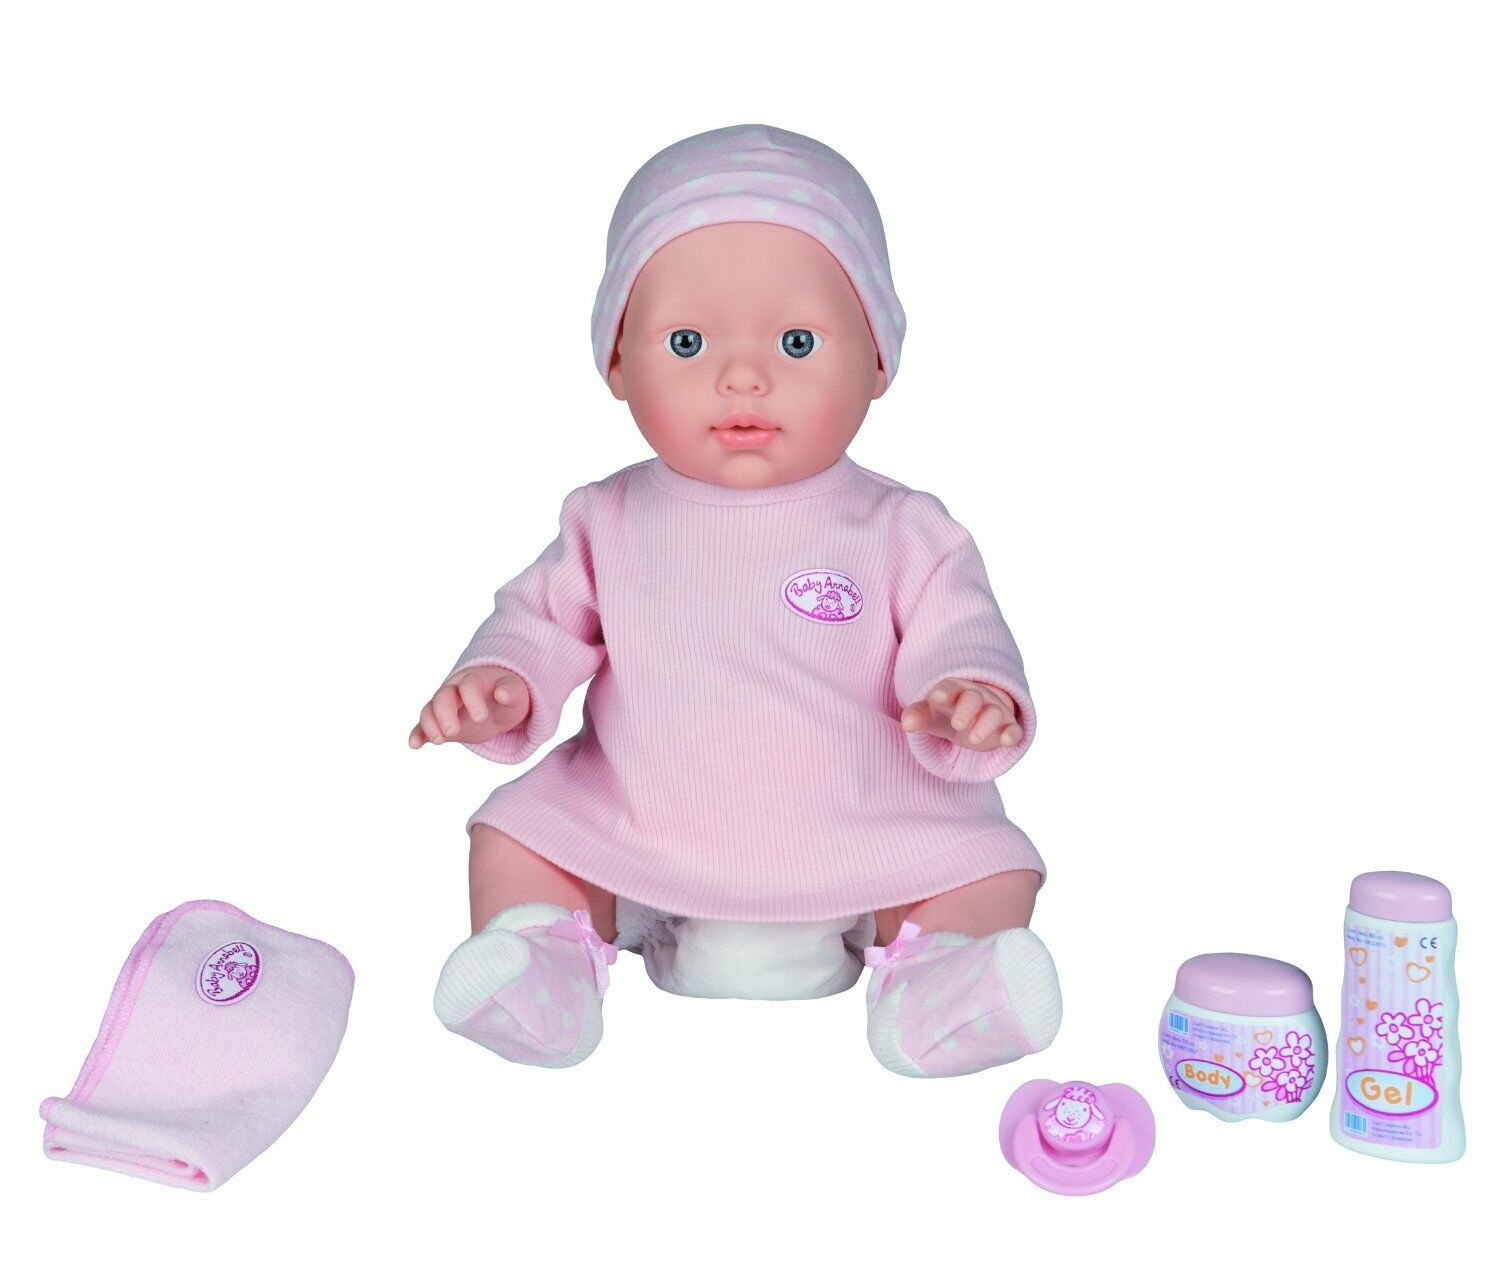 Orig. Orig. Orig. Zapf >>> Baby Annabell Care for me / Badepuppe <<< 42 cm 7c1234